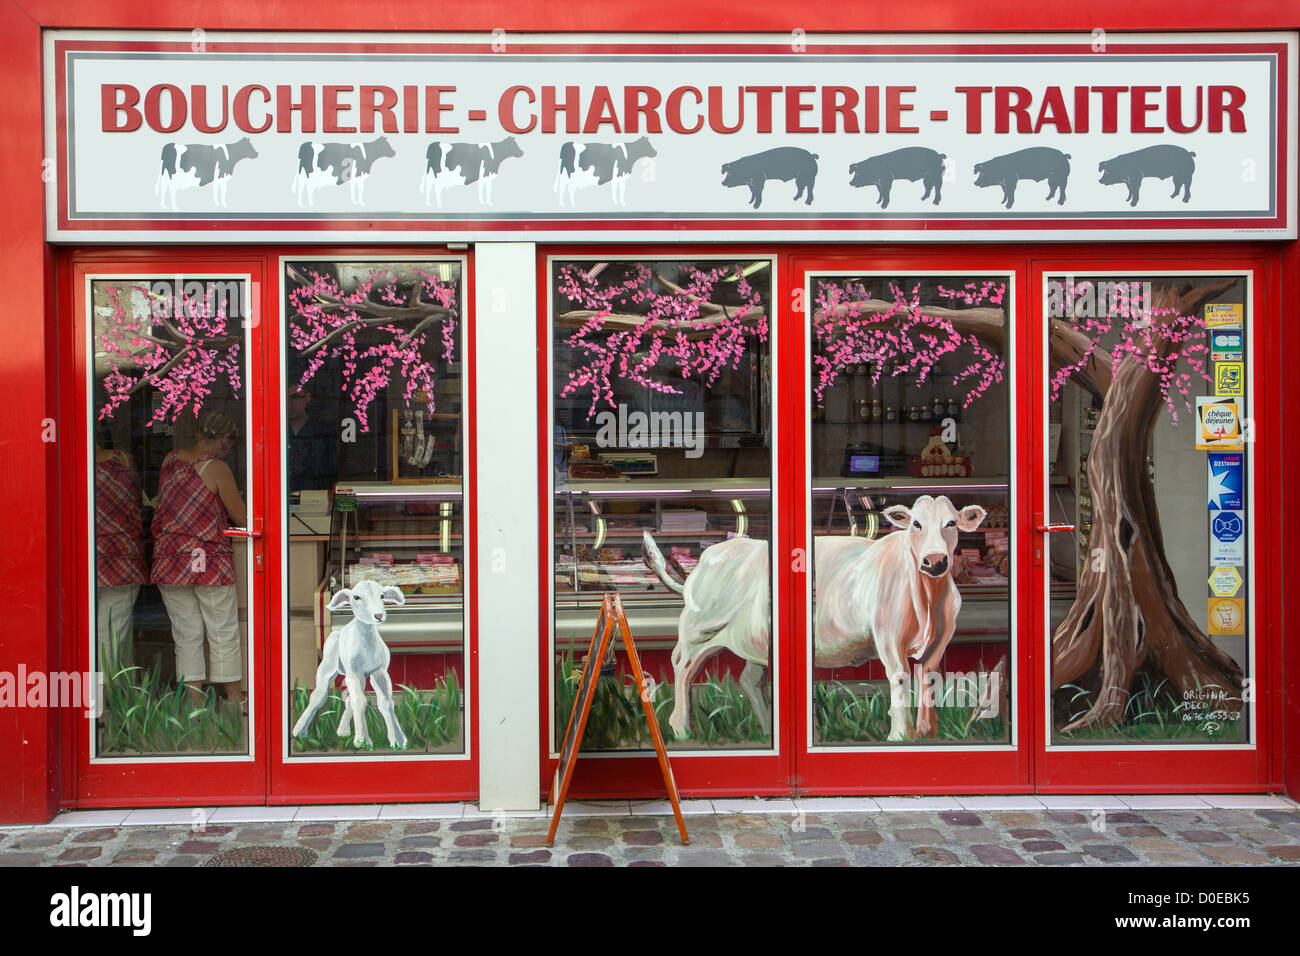 FACADE OF A BUTCHER'S SHOP PORK PRODUCTS CATERING FOOD STORES IN BONNEVAL EURE-ET-LOIR (28) FRANCE - Stock Image